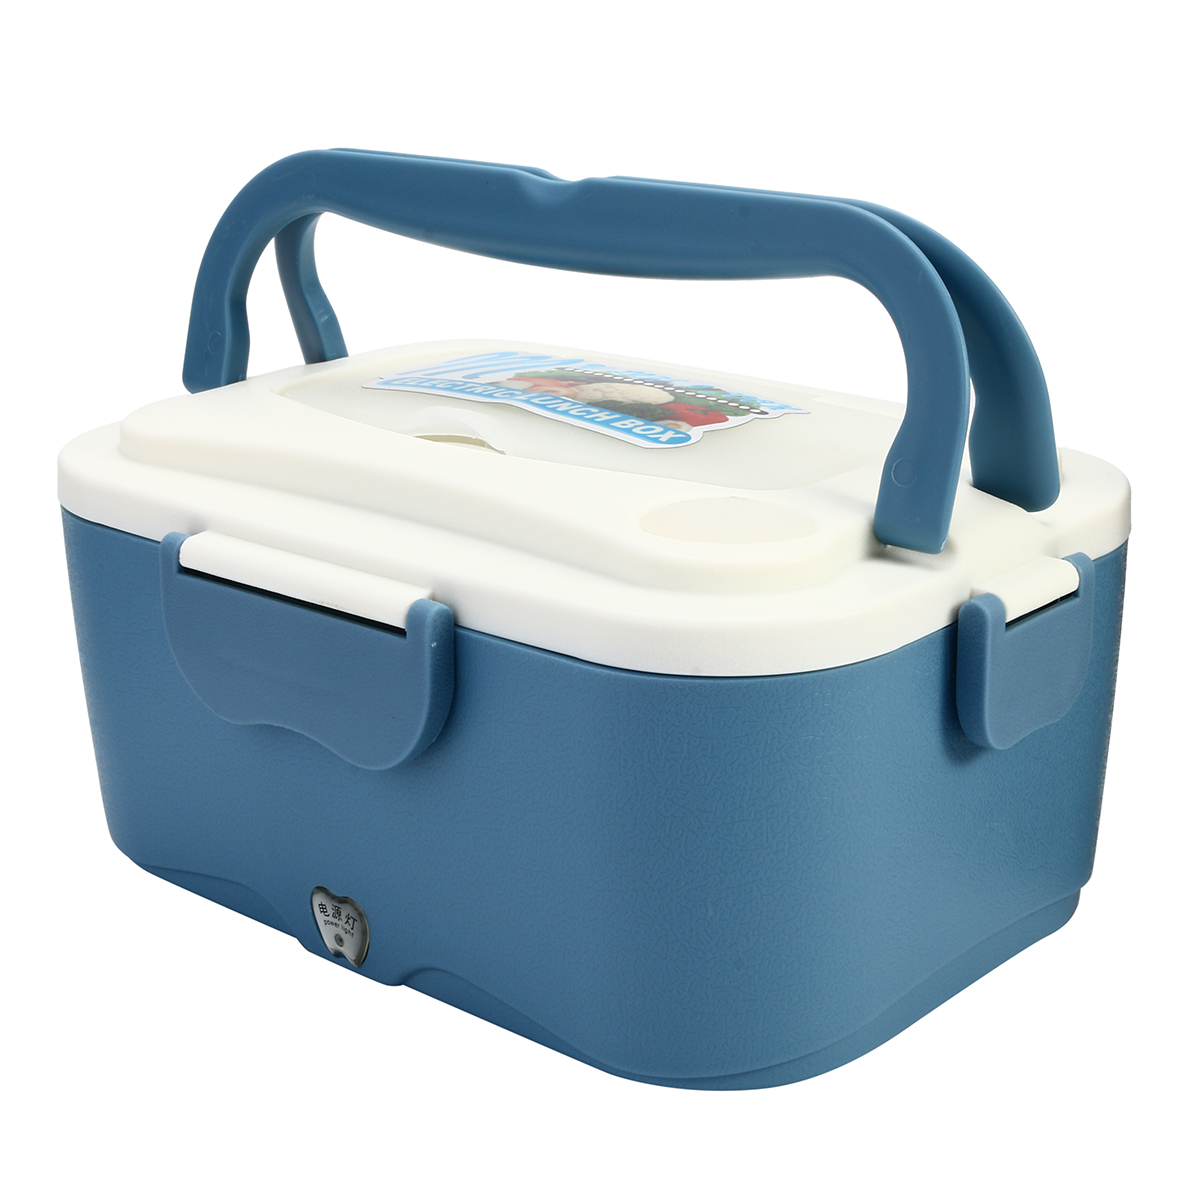 1 5l 12v 24v Car Electric Lunch Box Outdoor Traveling Meal